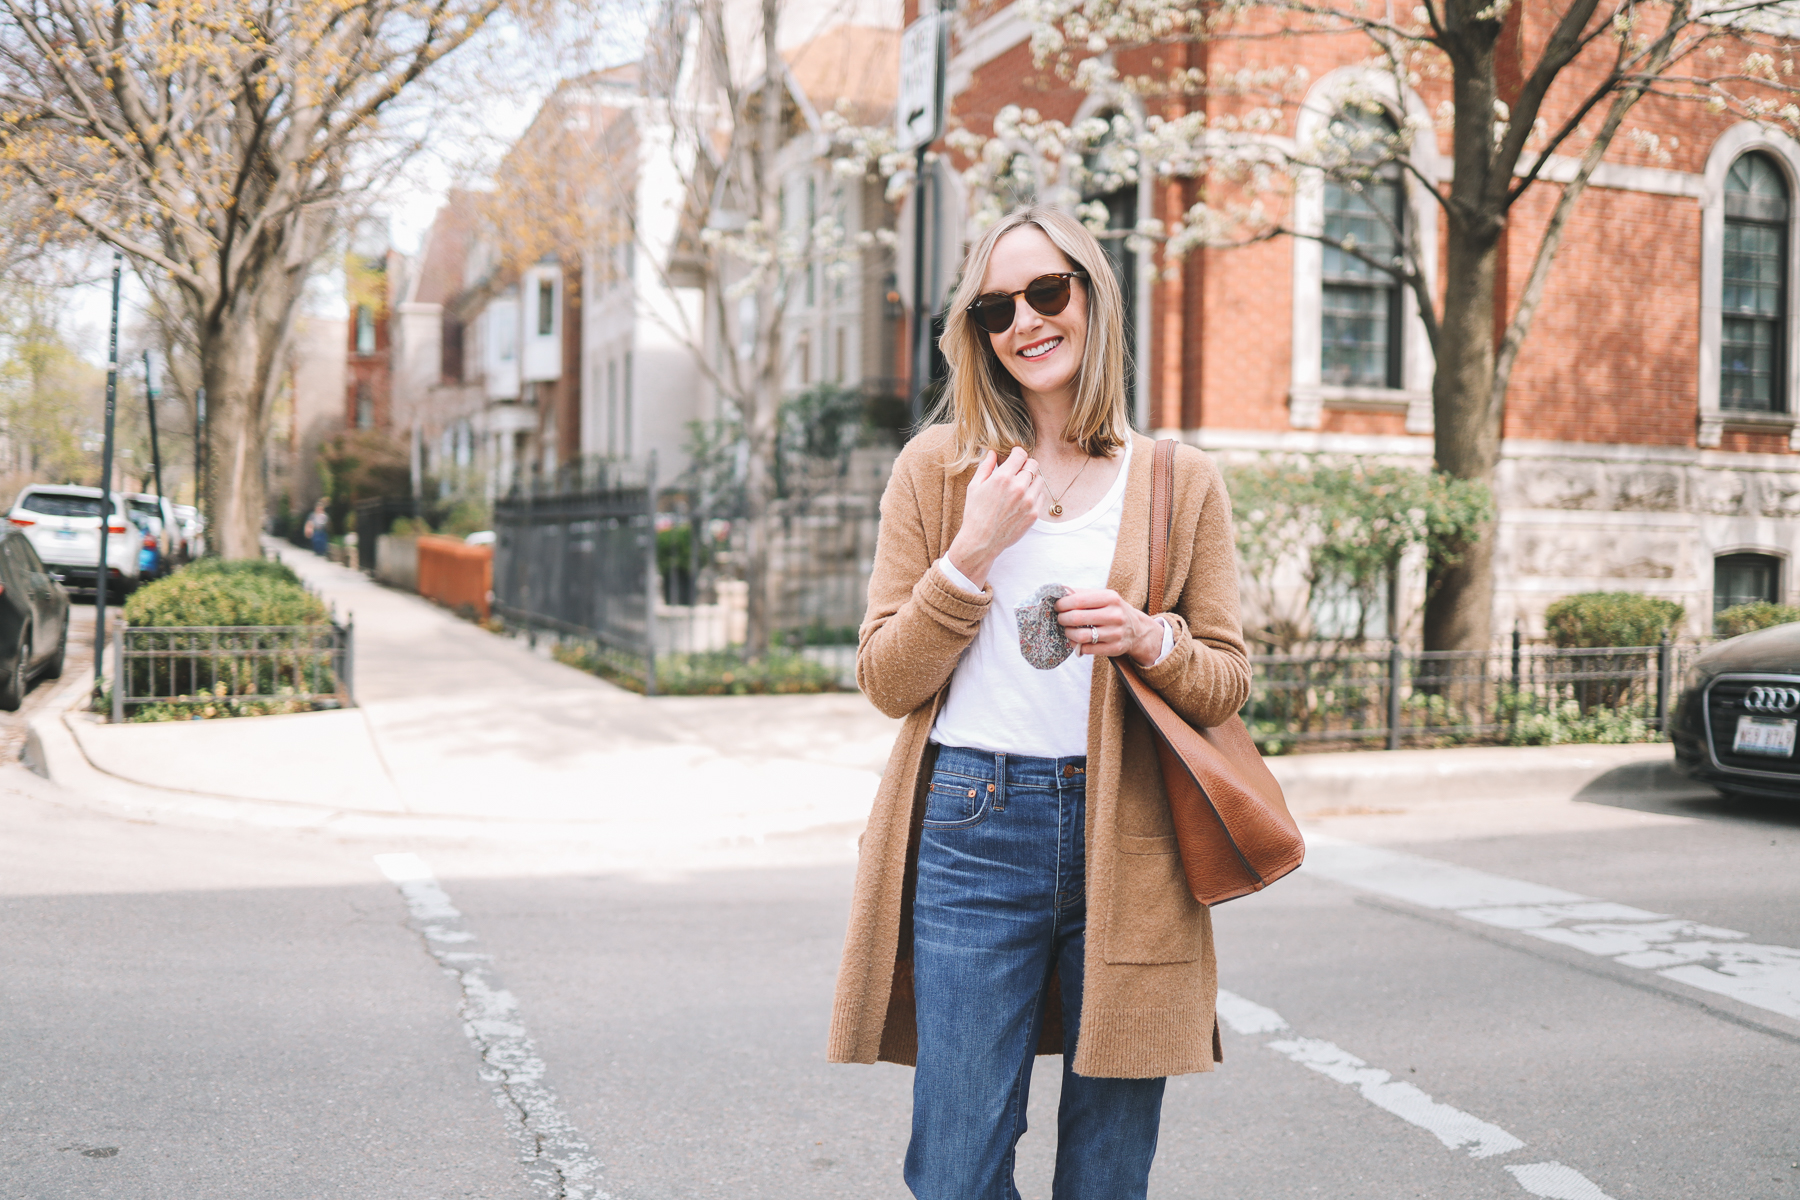 spring outfit idea | Go-To Casual Spring Outfit